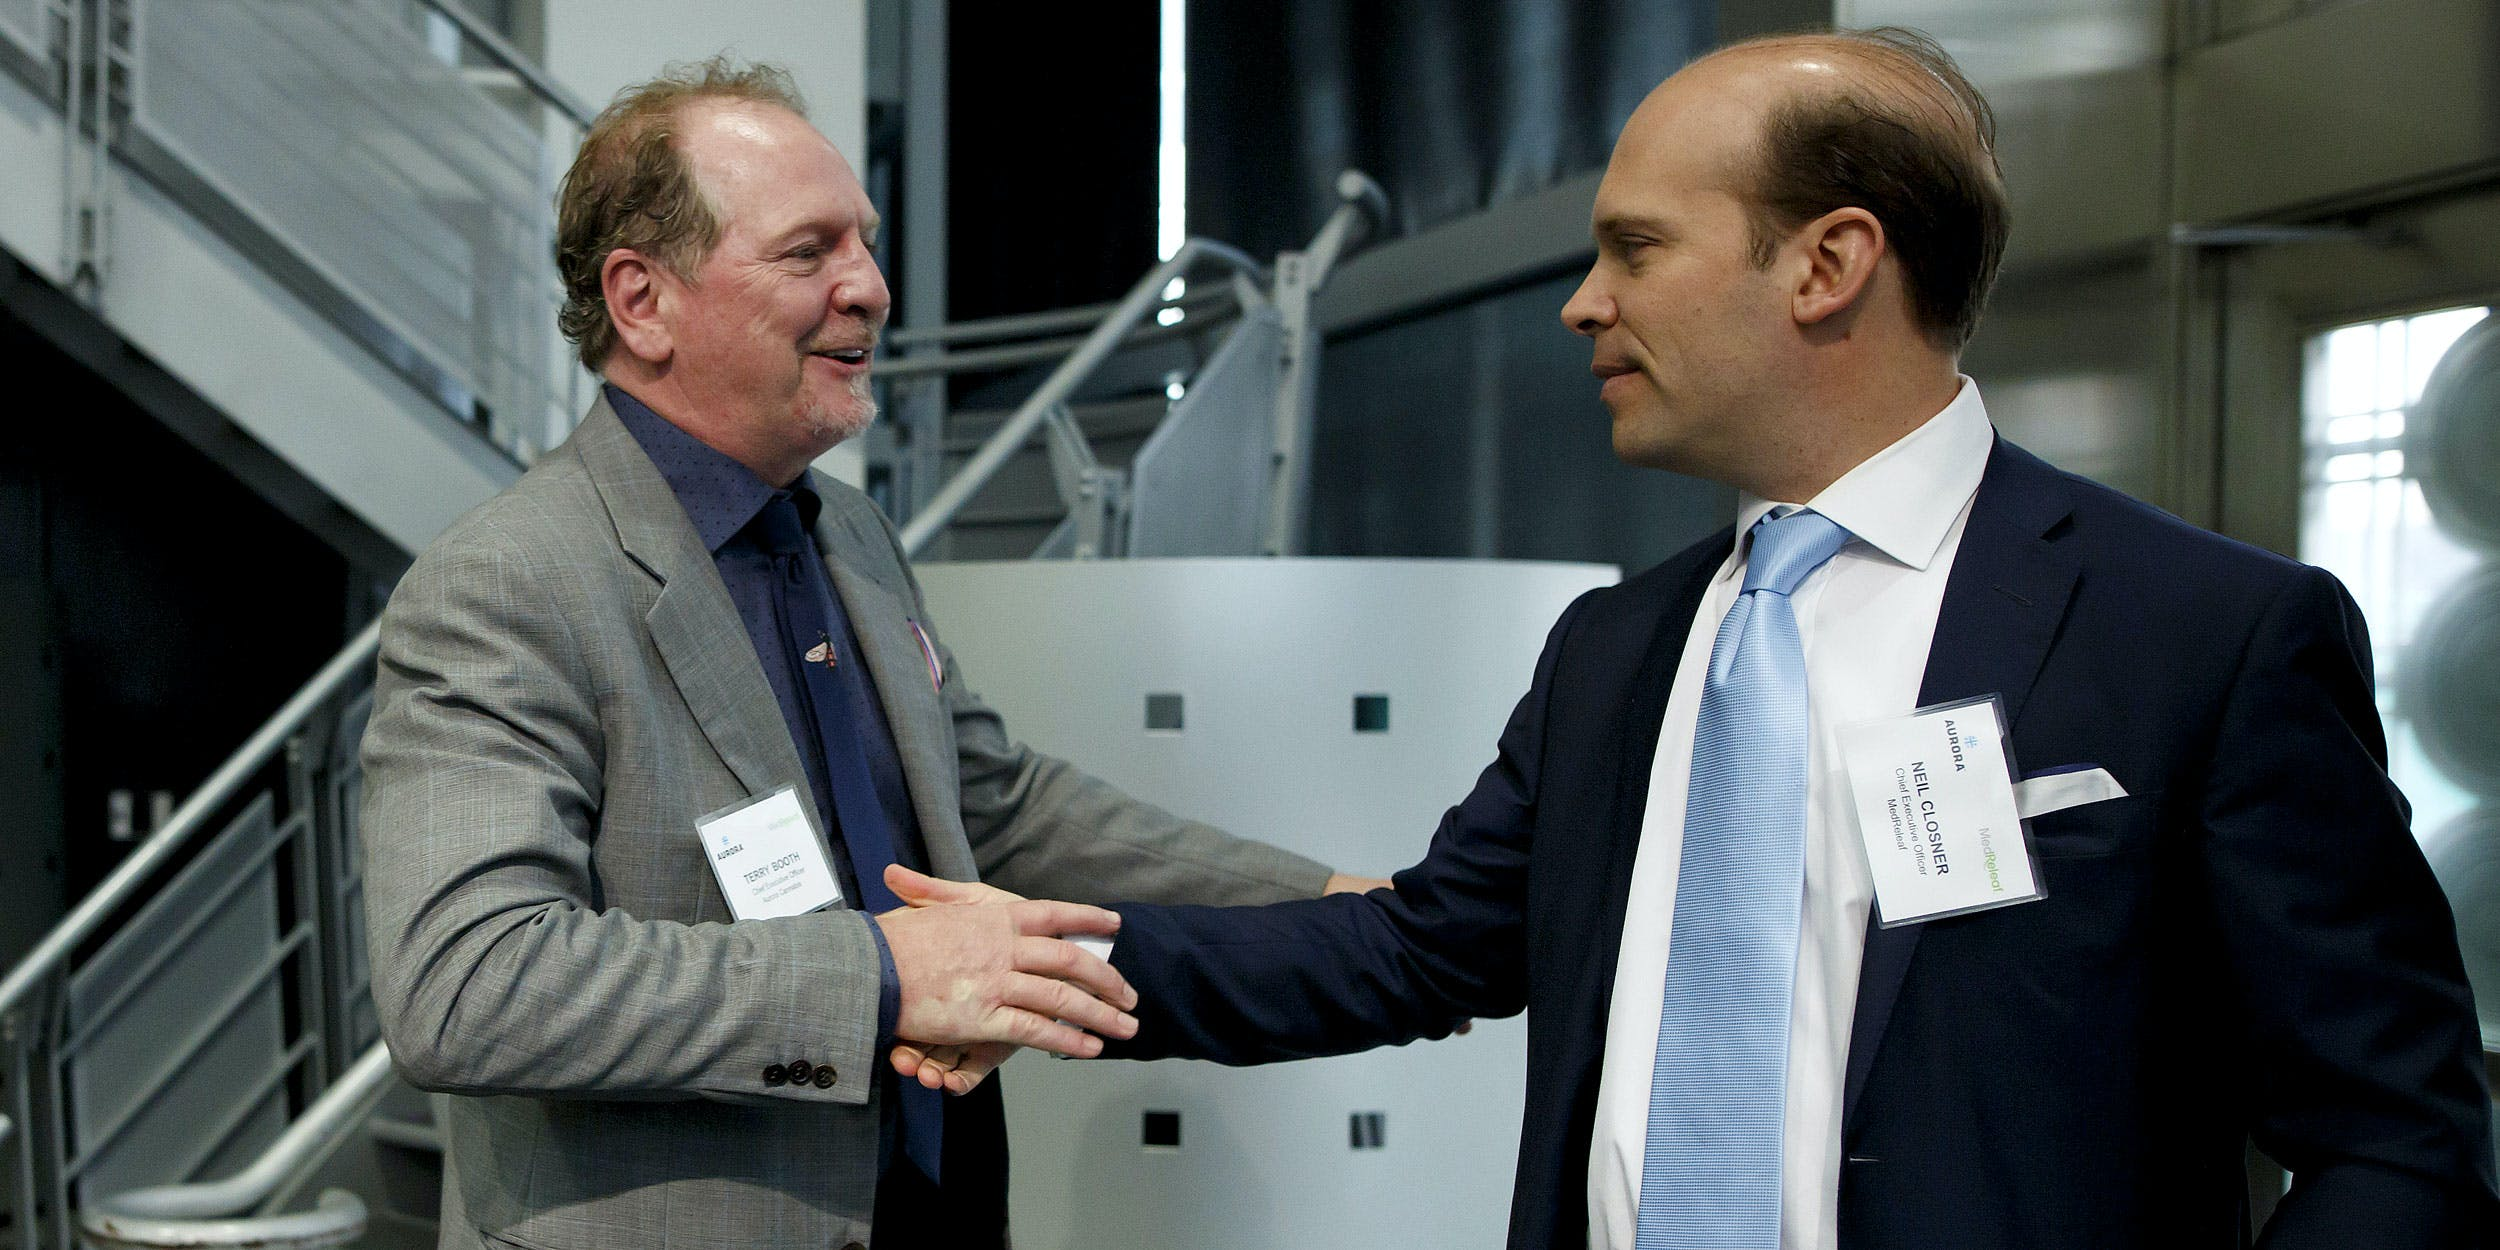 Terry Booth, chief executive officer of Aurora Cannabis Inc., left, shakes hands with Neil Closner, chief executive officer of MedReleaf Corp., during a news conference at the Toronto Stock Exchange